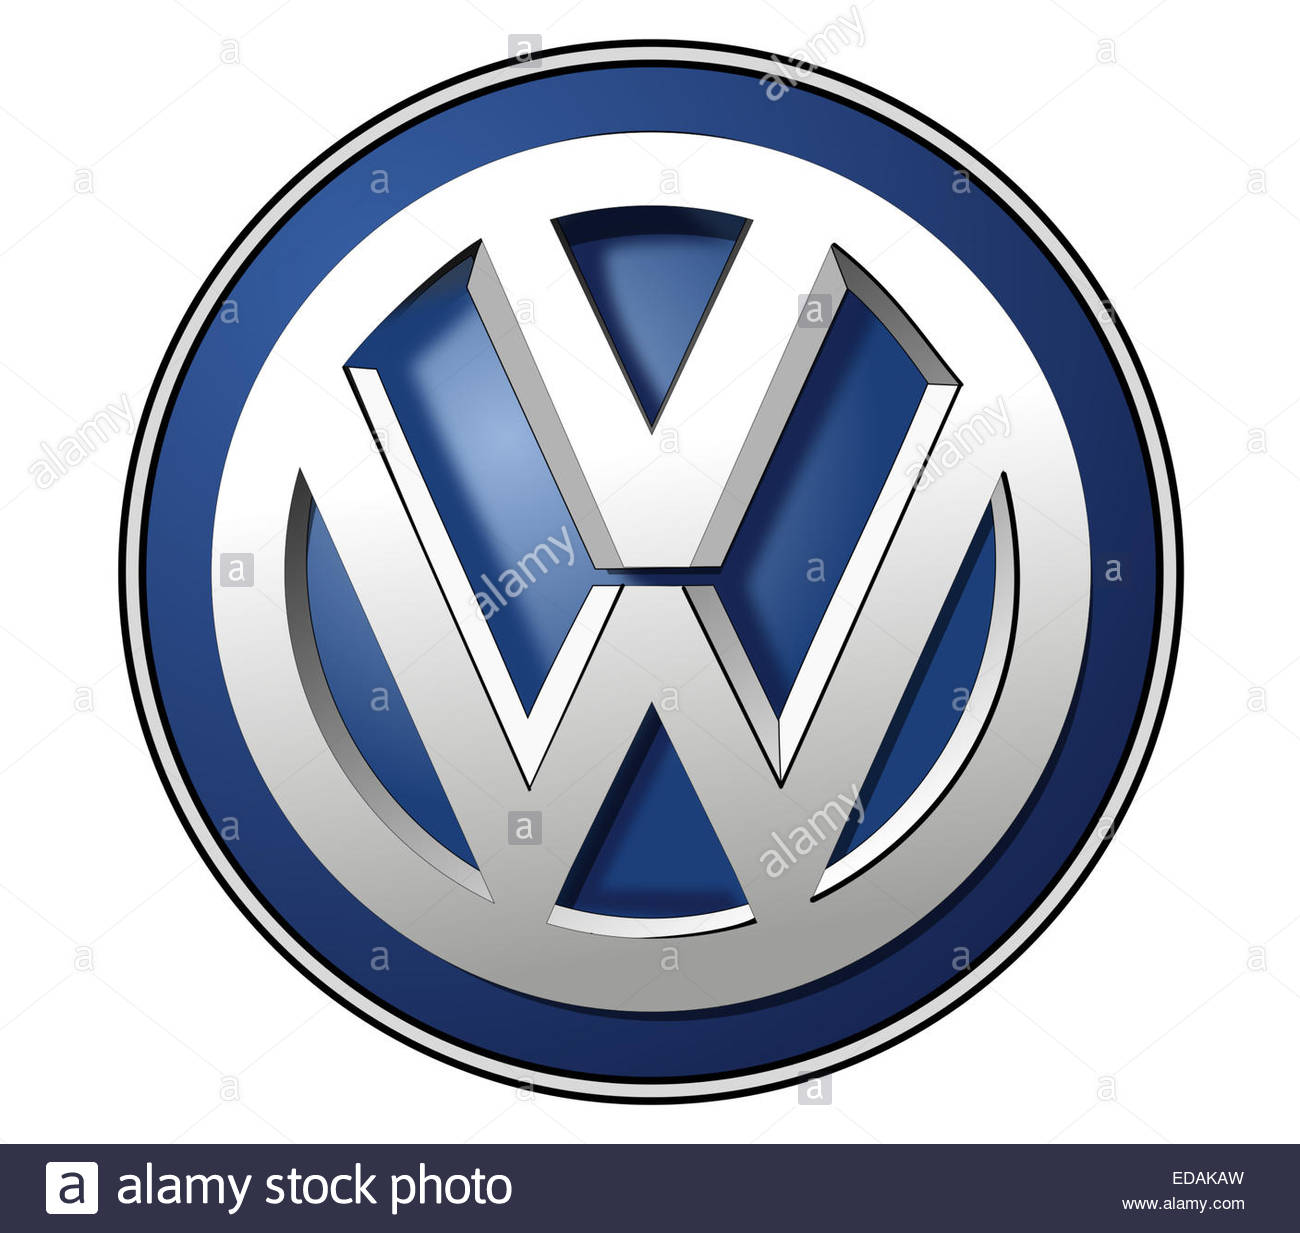 VW Volkswagen logo icon sign - Stock Image